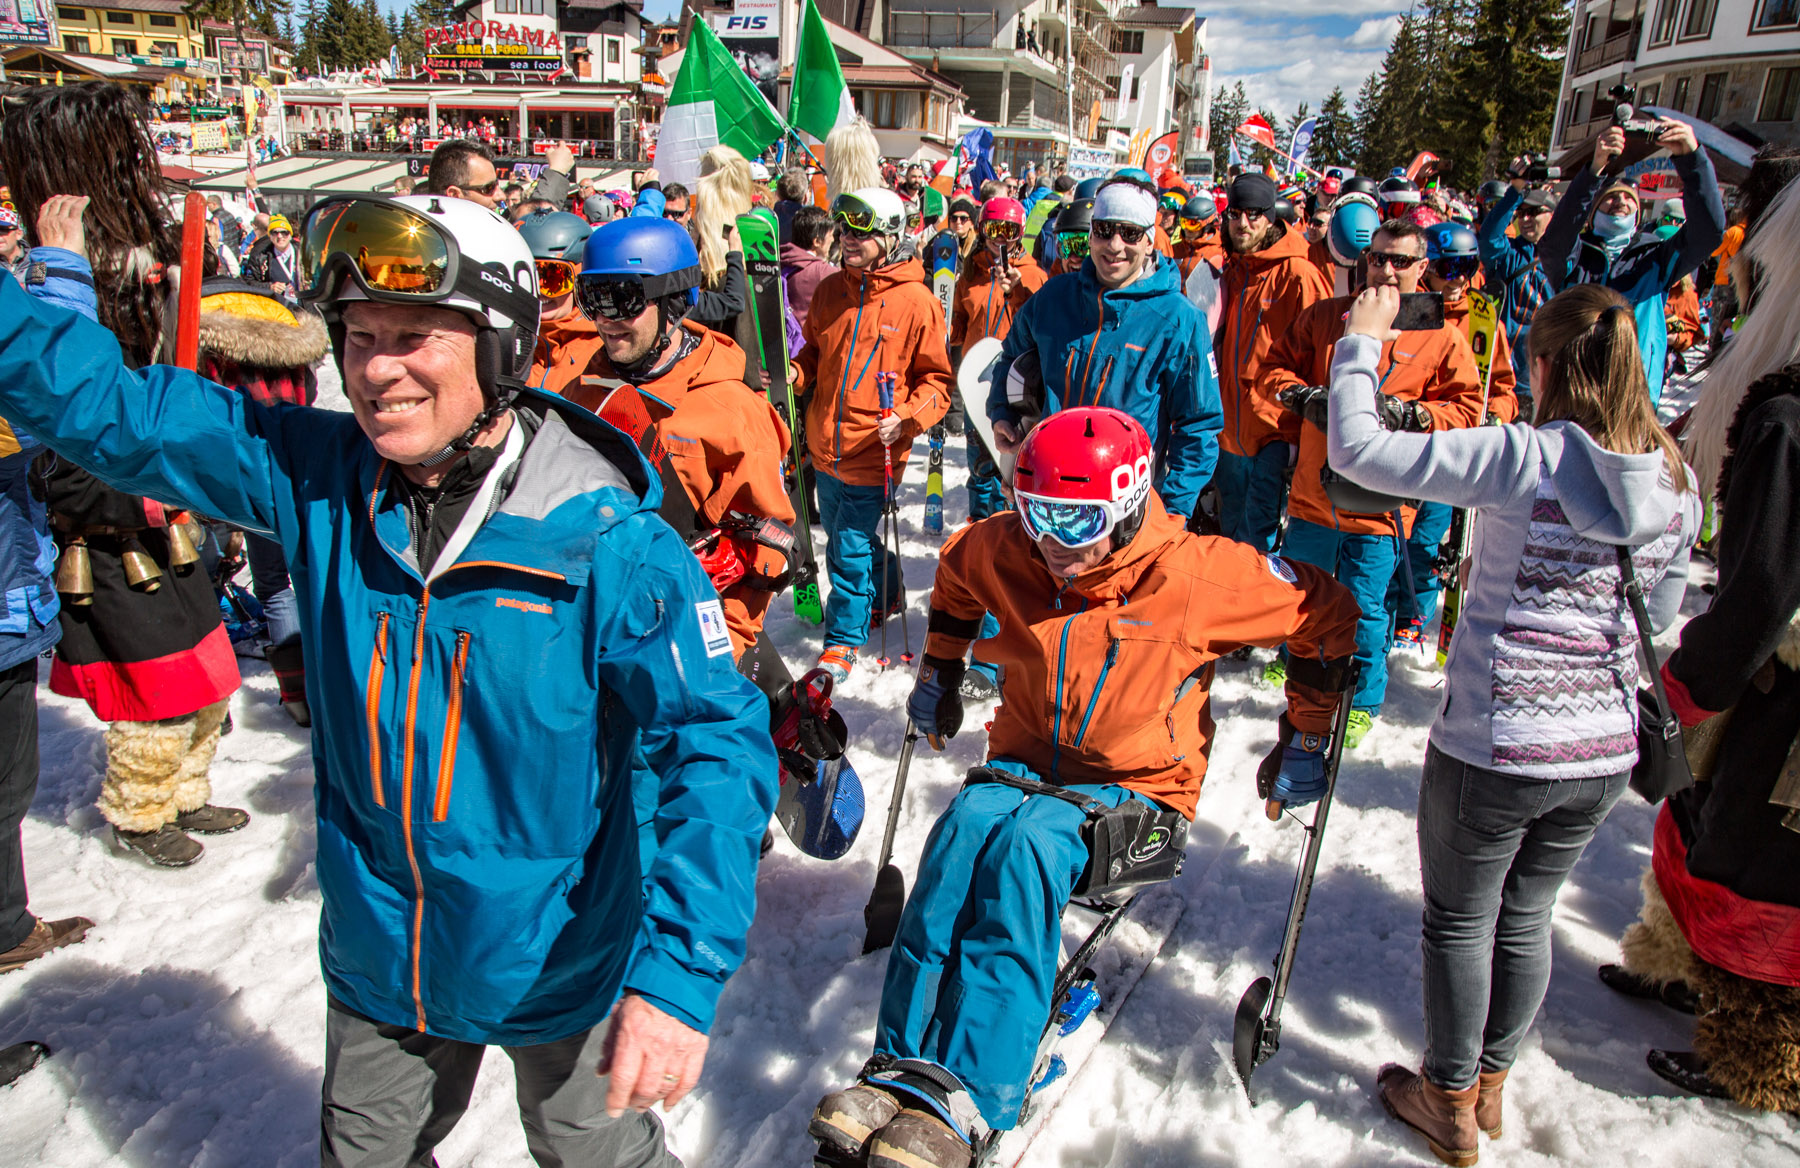 PSIA-AASI Chairman of the Board of Directors Ed Younglove at the Interski 2019 Opening Day Parade